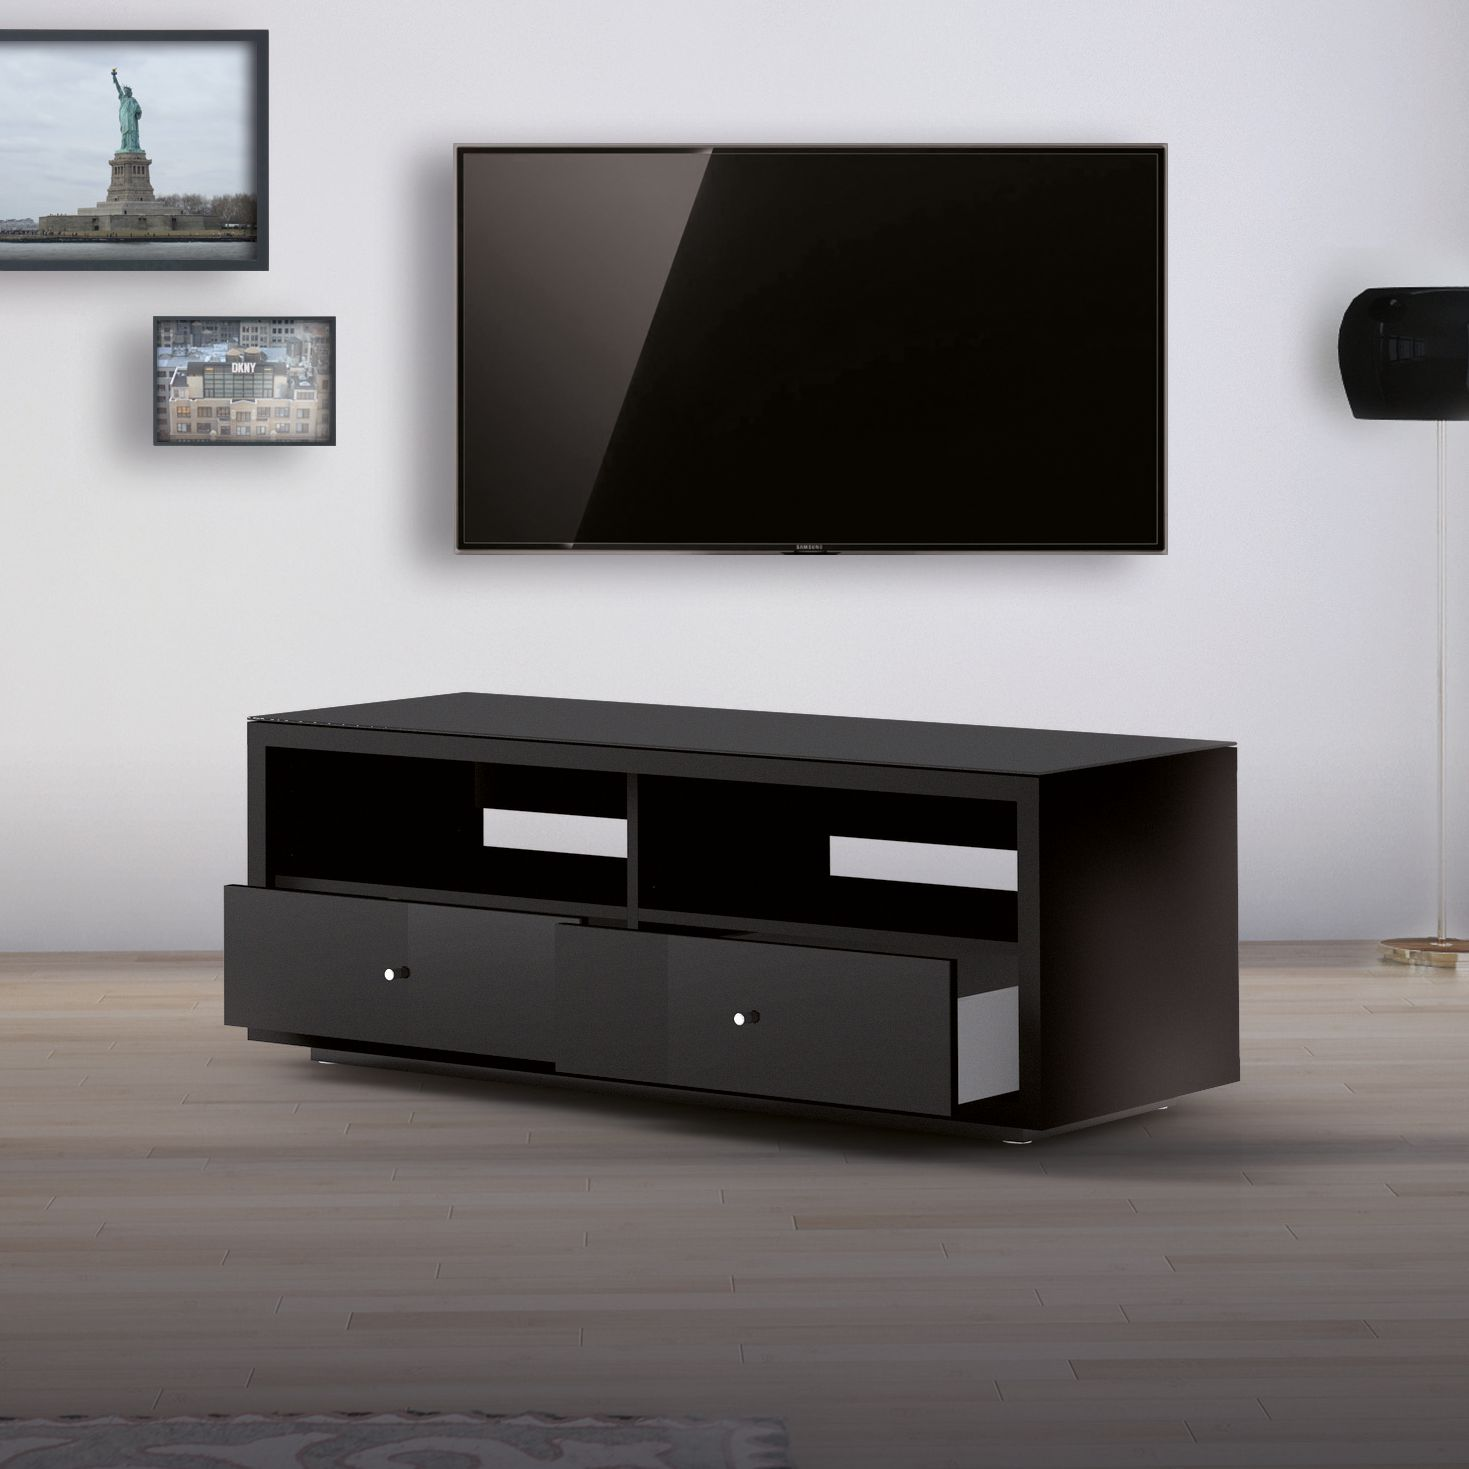 tv lowboard schwarz hochglanz inspirierendes design f r wohnm bel. Black Bedroom Furniture Sets. Home Design Ideas